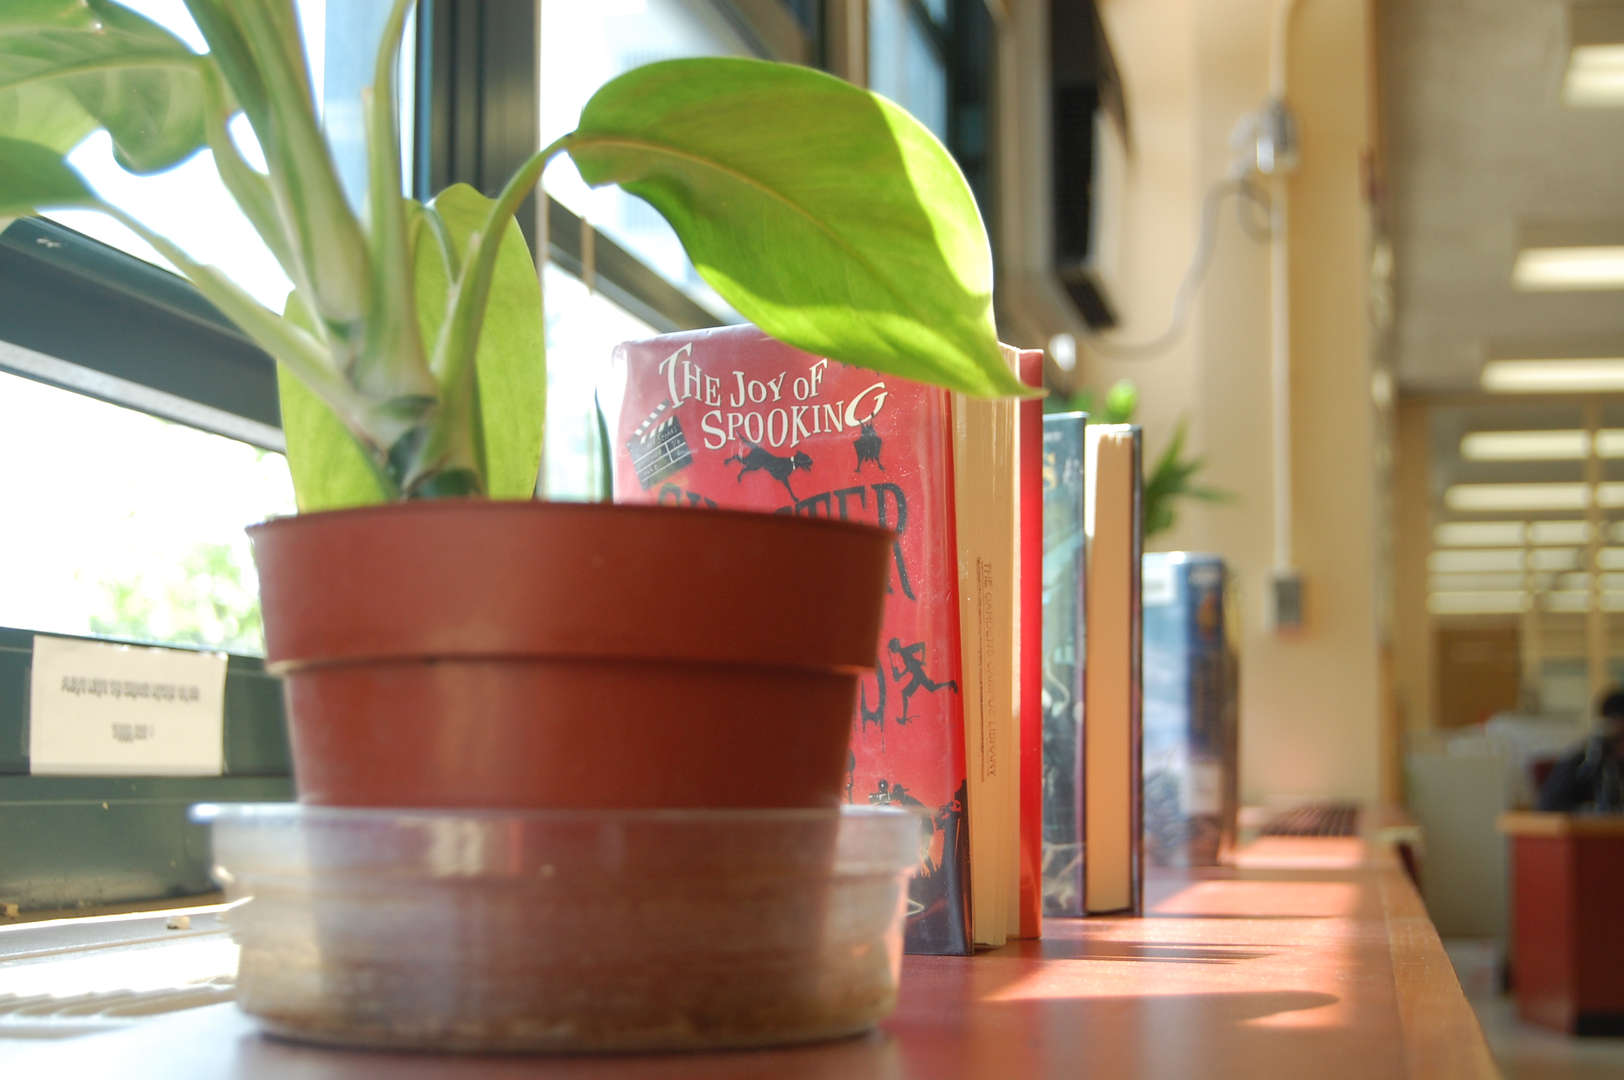 window edge in a classroom displaying plant and books